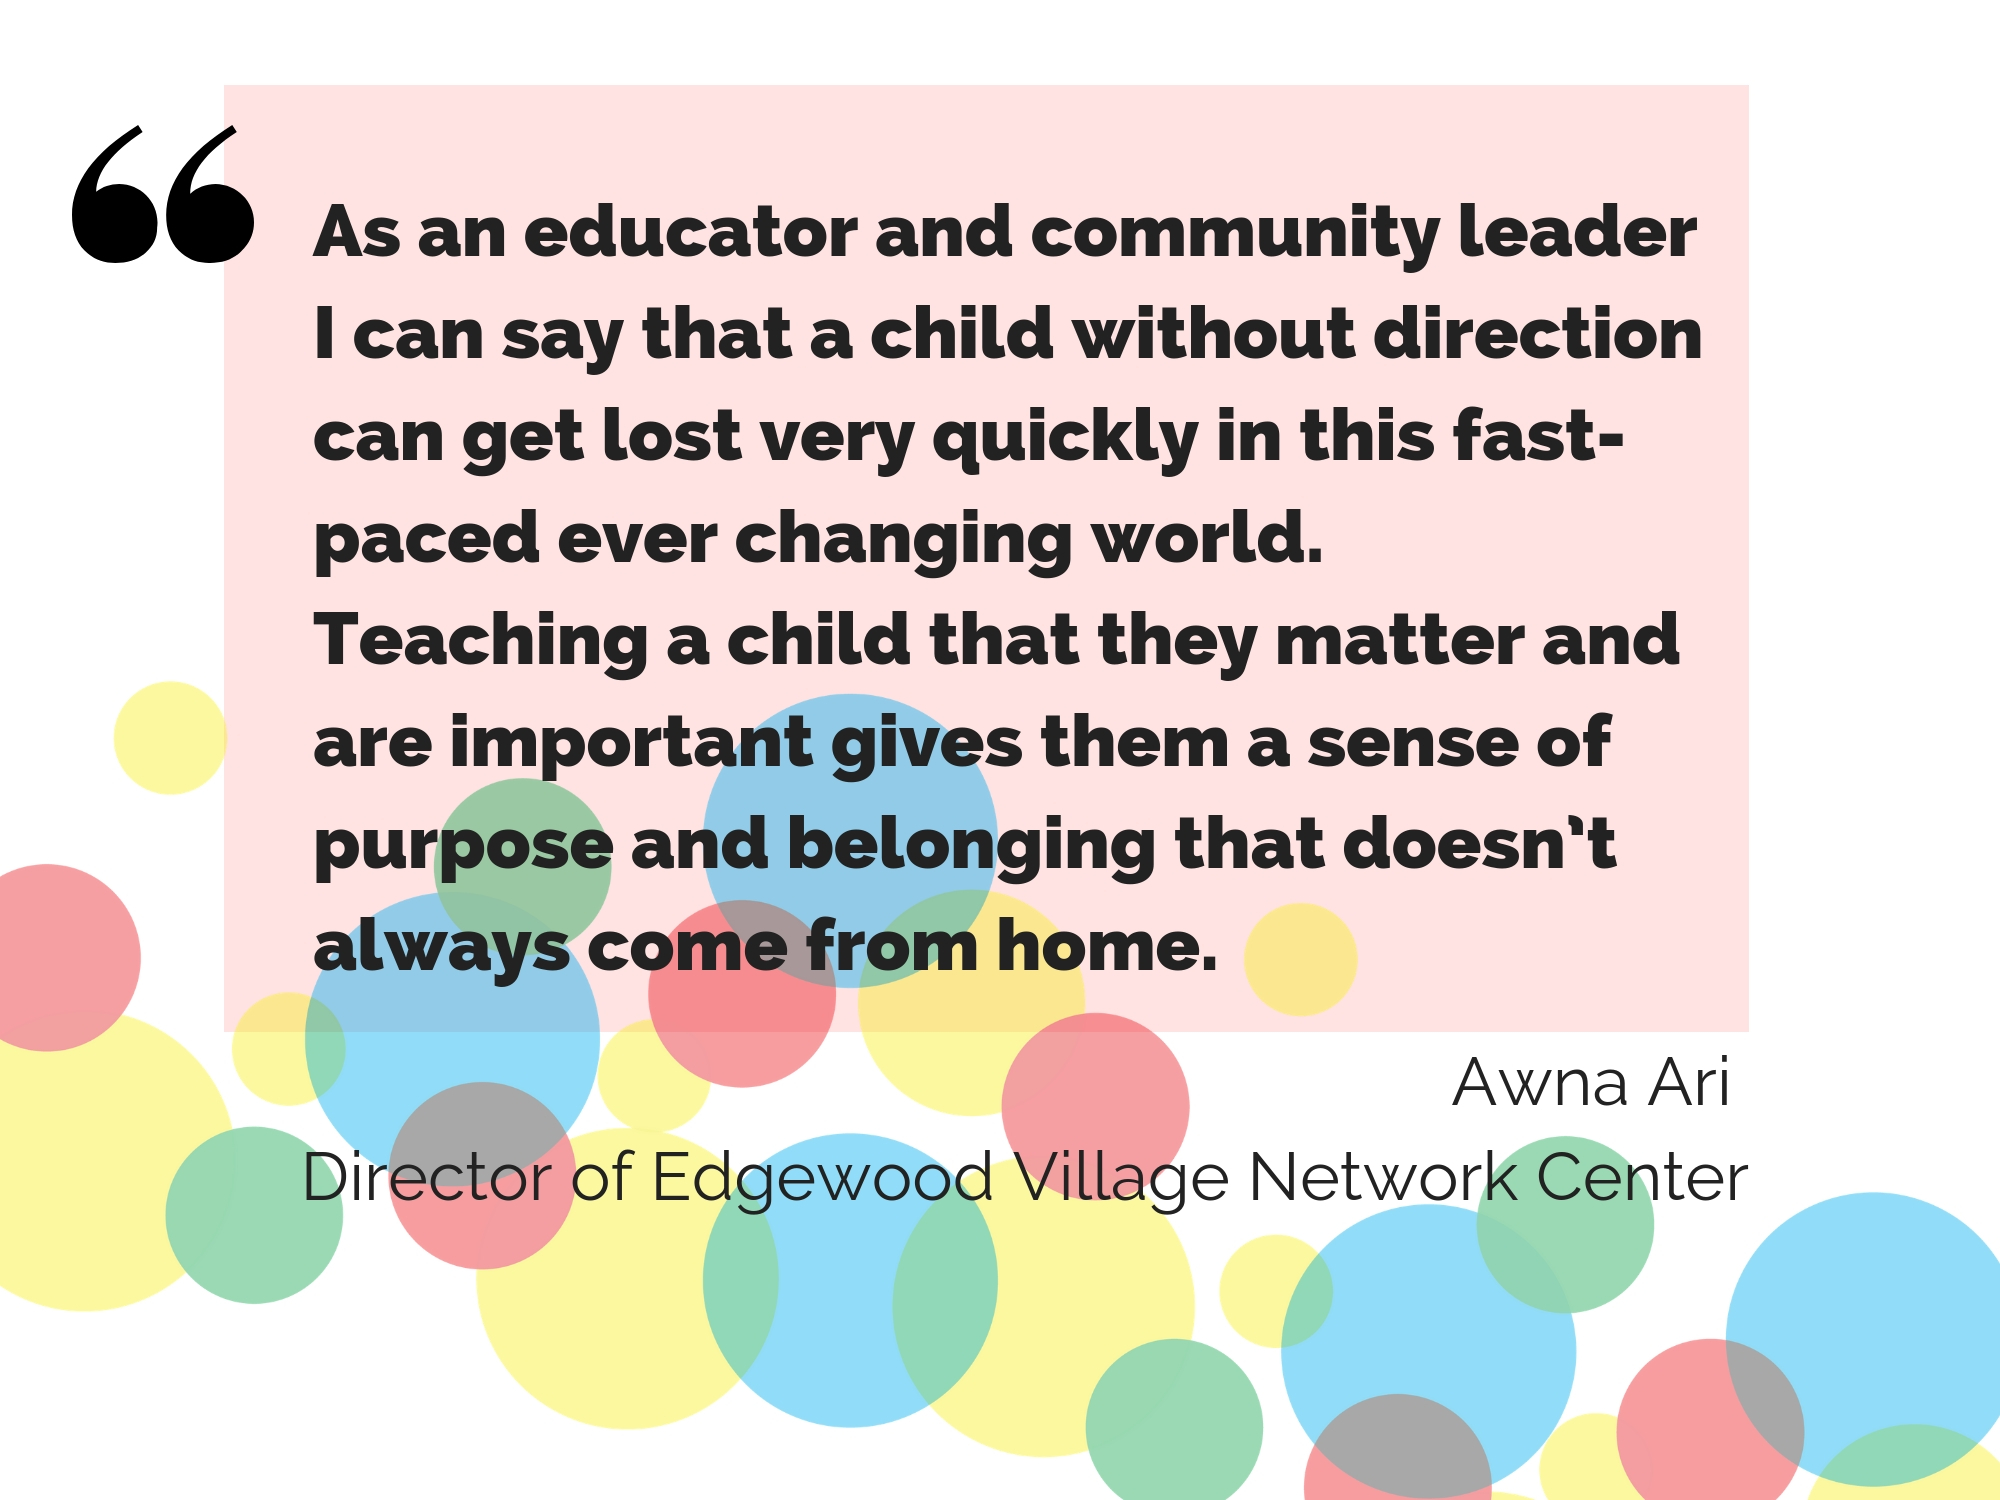 As an educator and community leader I can say that a child without direction can get lost very quickly in this fast-paced, ever-changing world. Teaching a child that they matter and are important gives them a sense of purpose and belonging that doesn't always come from home. A message from Edgewood Village Network Center director Awna Ari